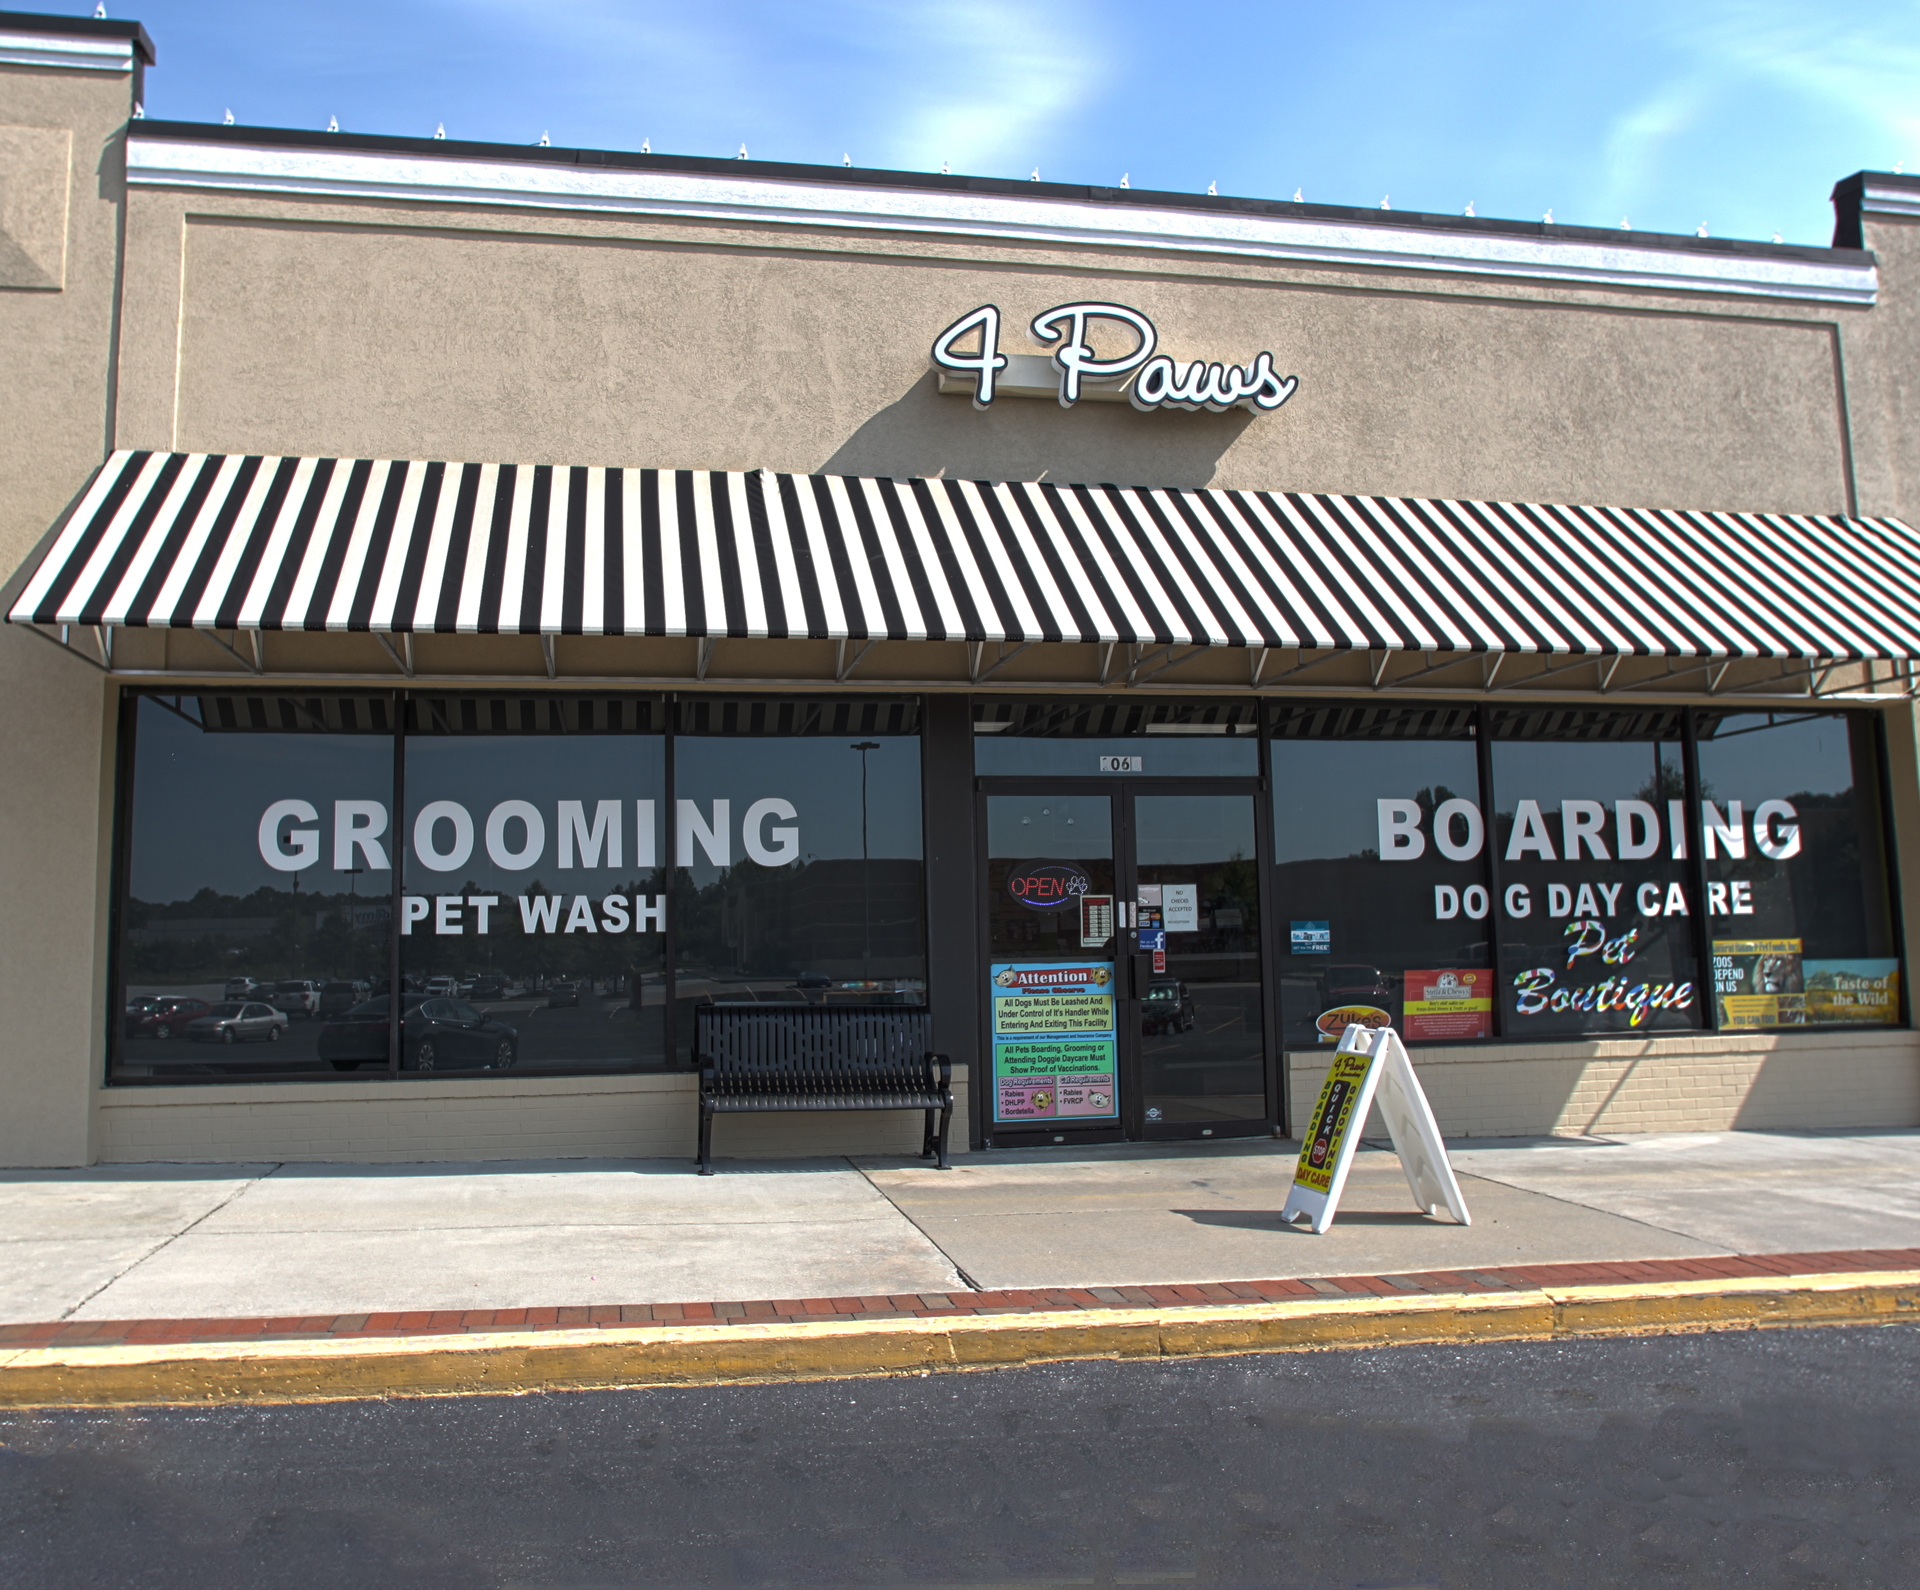 Spartanburg, South Carolina, Greenville, Dog Grooming, Cat Grooming, 4 Paws, Pet Supplies, Dog Boarding, Doggy Day Care, Dog Food, Dog Treats, Dog Leashes, Dog Collars, Dog Toys